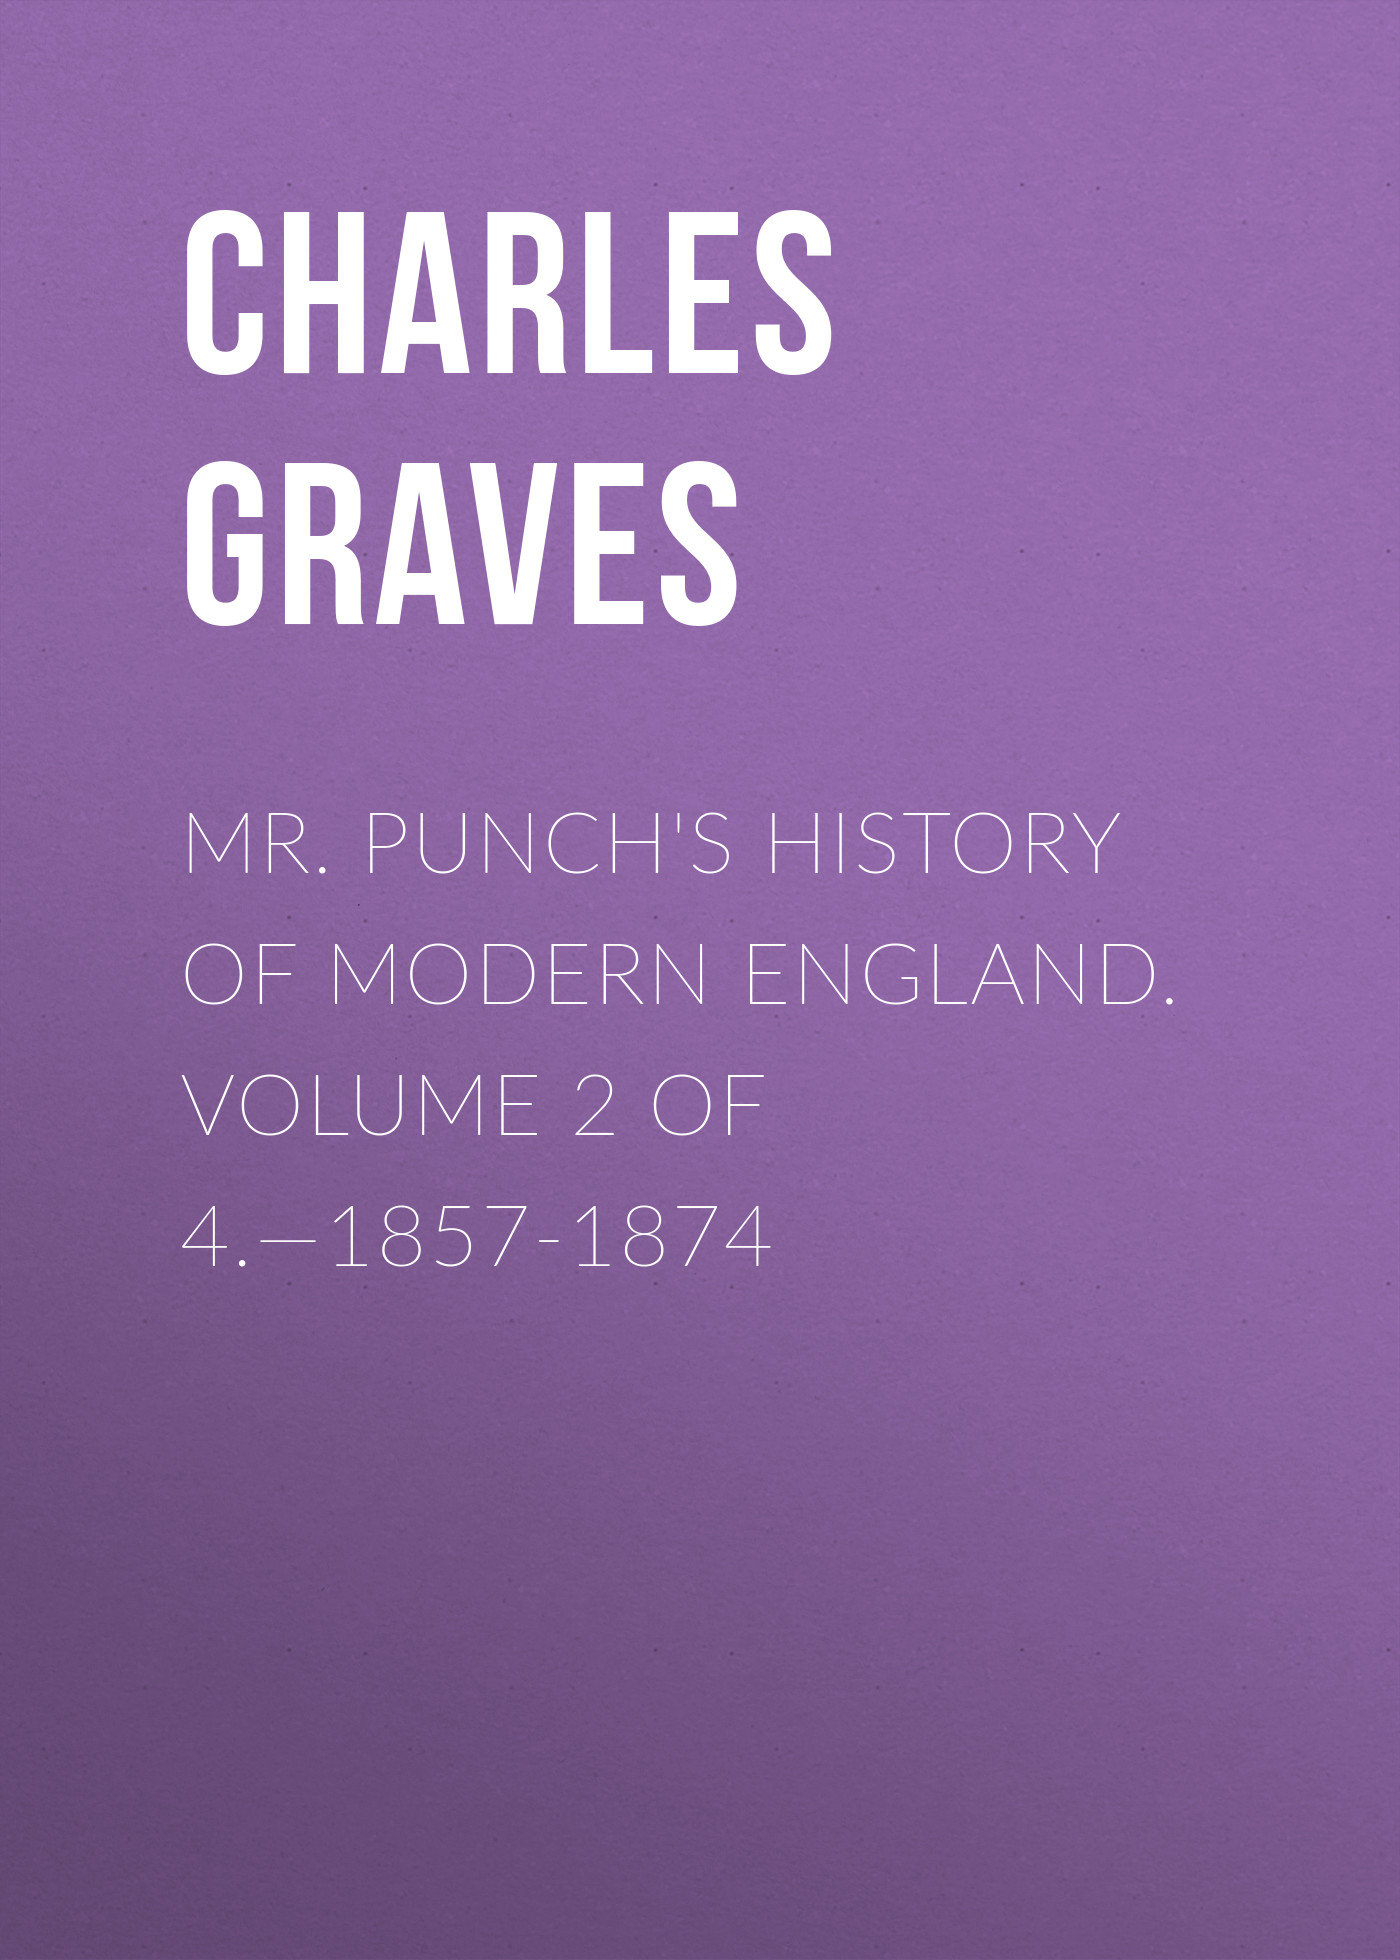 Graves Charles Larcom Mr. Punch's History of Modern England. Volume 2 of 4.—1857-1874 de coster charles the legend of ulenspiegel volume 1 of 2